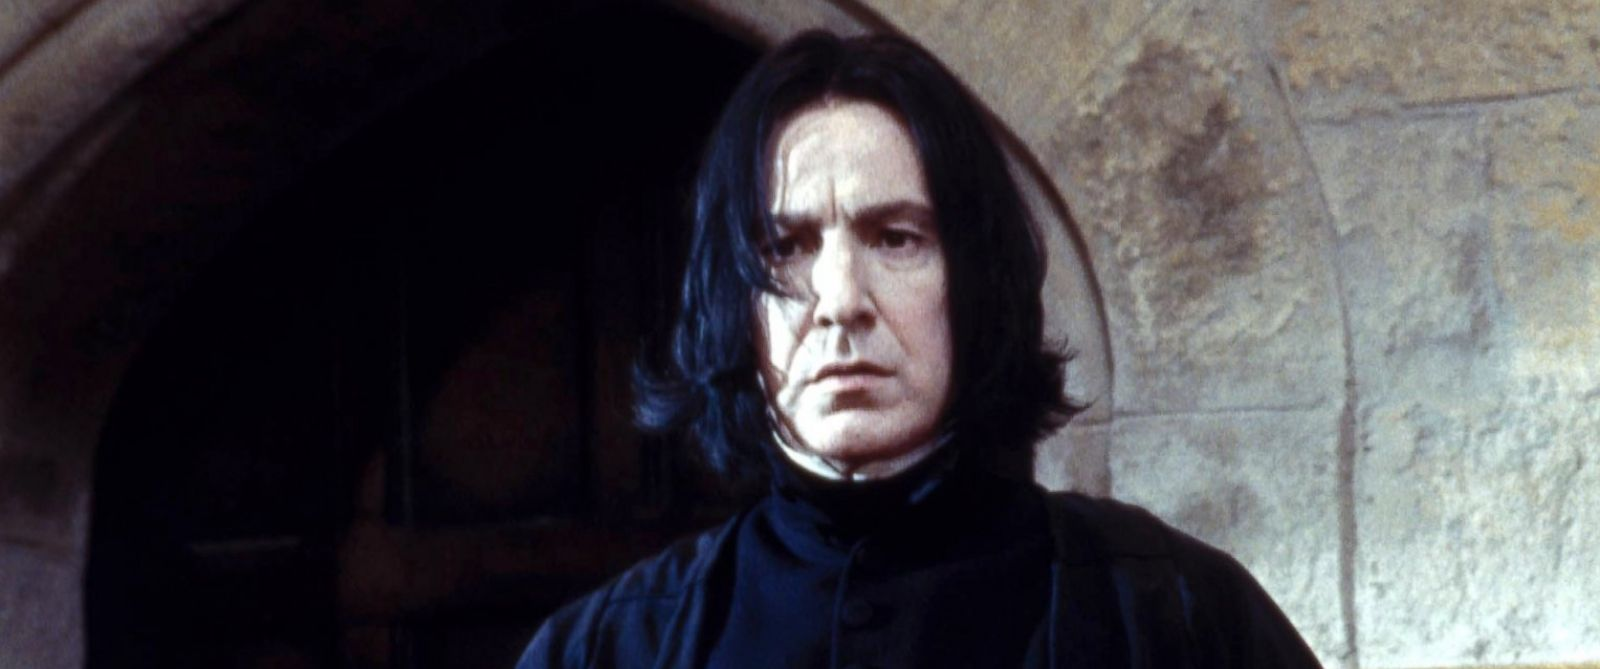 """PHOTO: Alan Rickman is seen as Professor Snape in an image from """"Harry Potter and the Philosophers Stone,"""" 2001."""